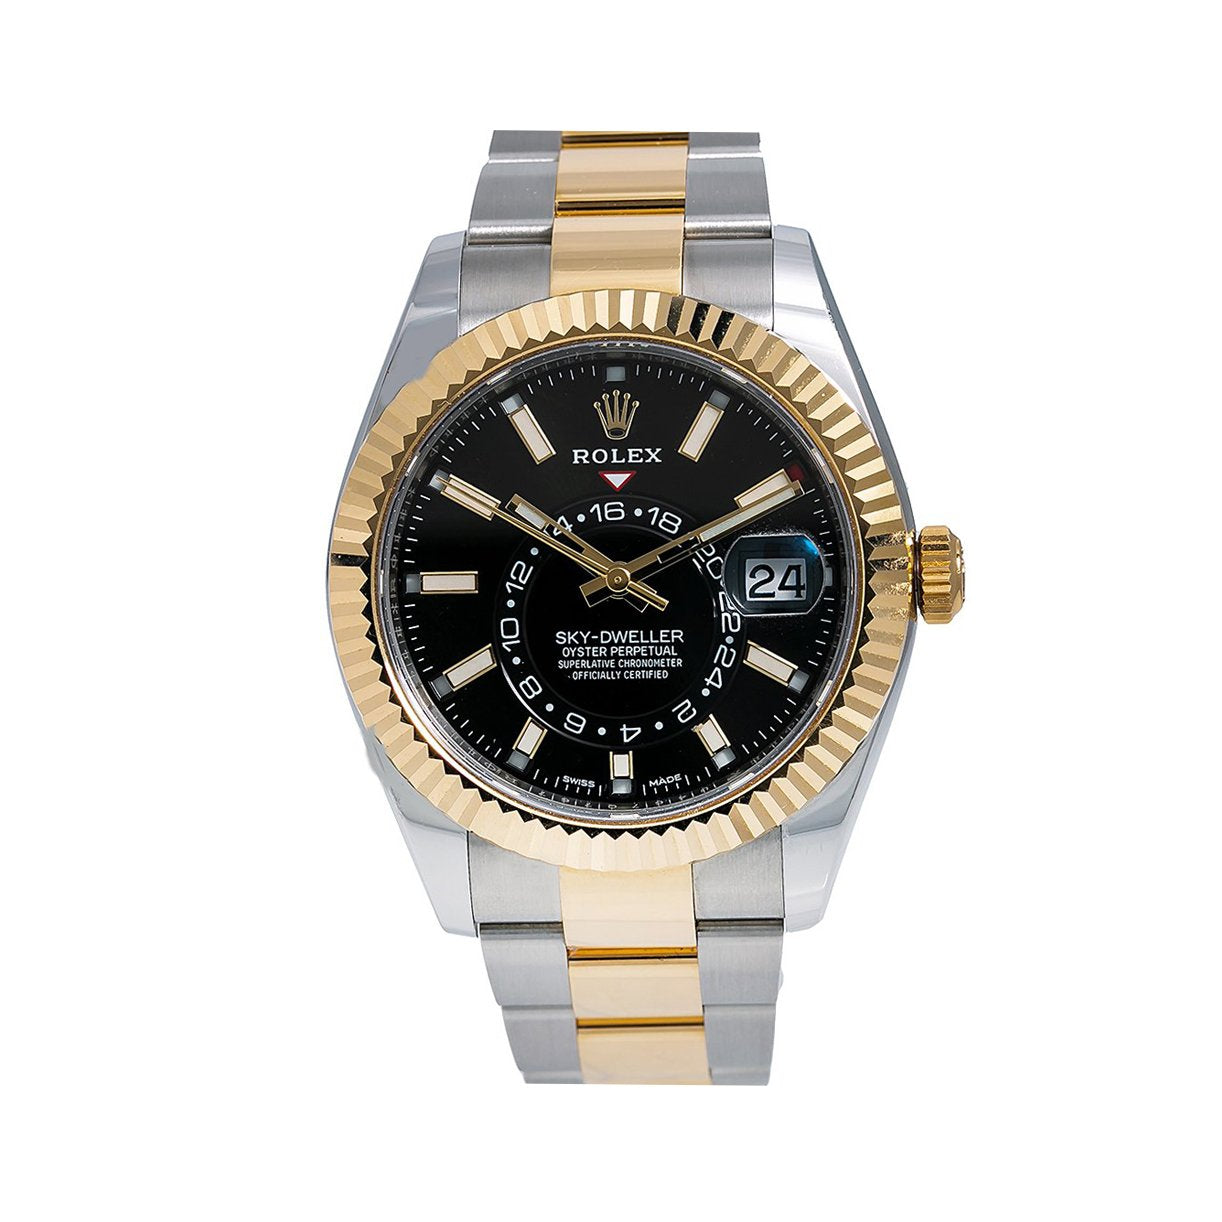 Rolex Sky-Dweller 326933 42MM Black Dial With Two Tone Bracelet